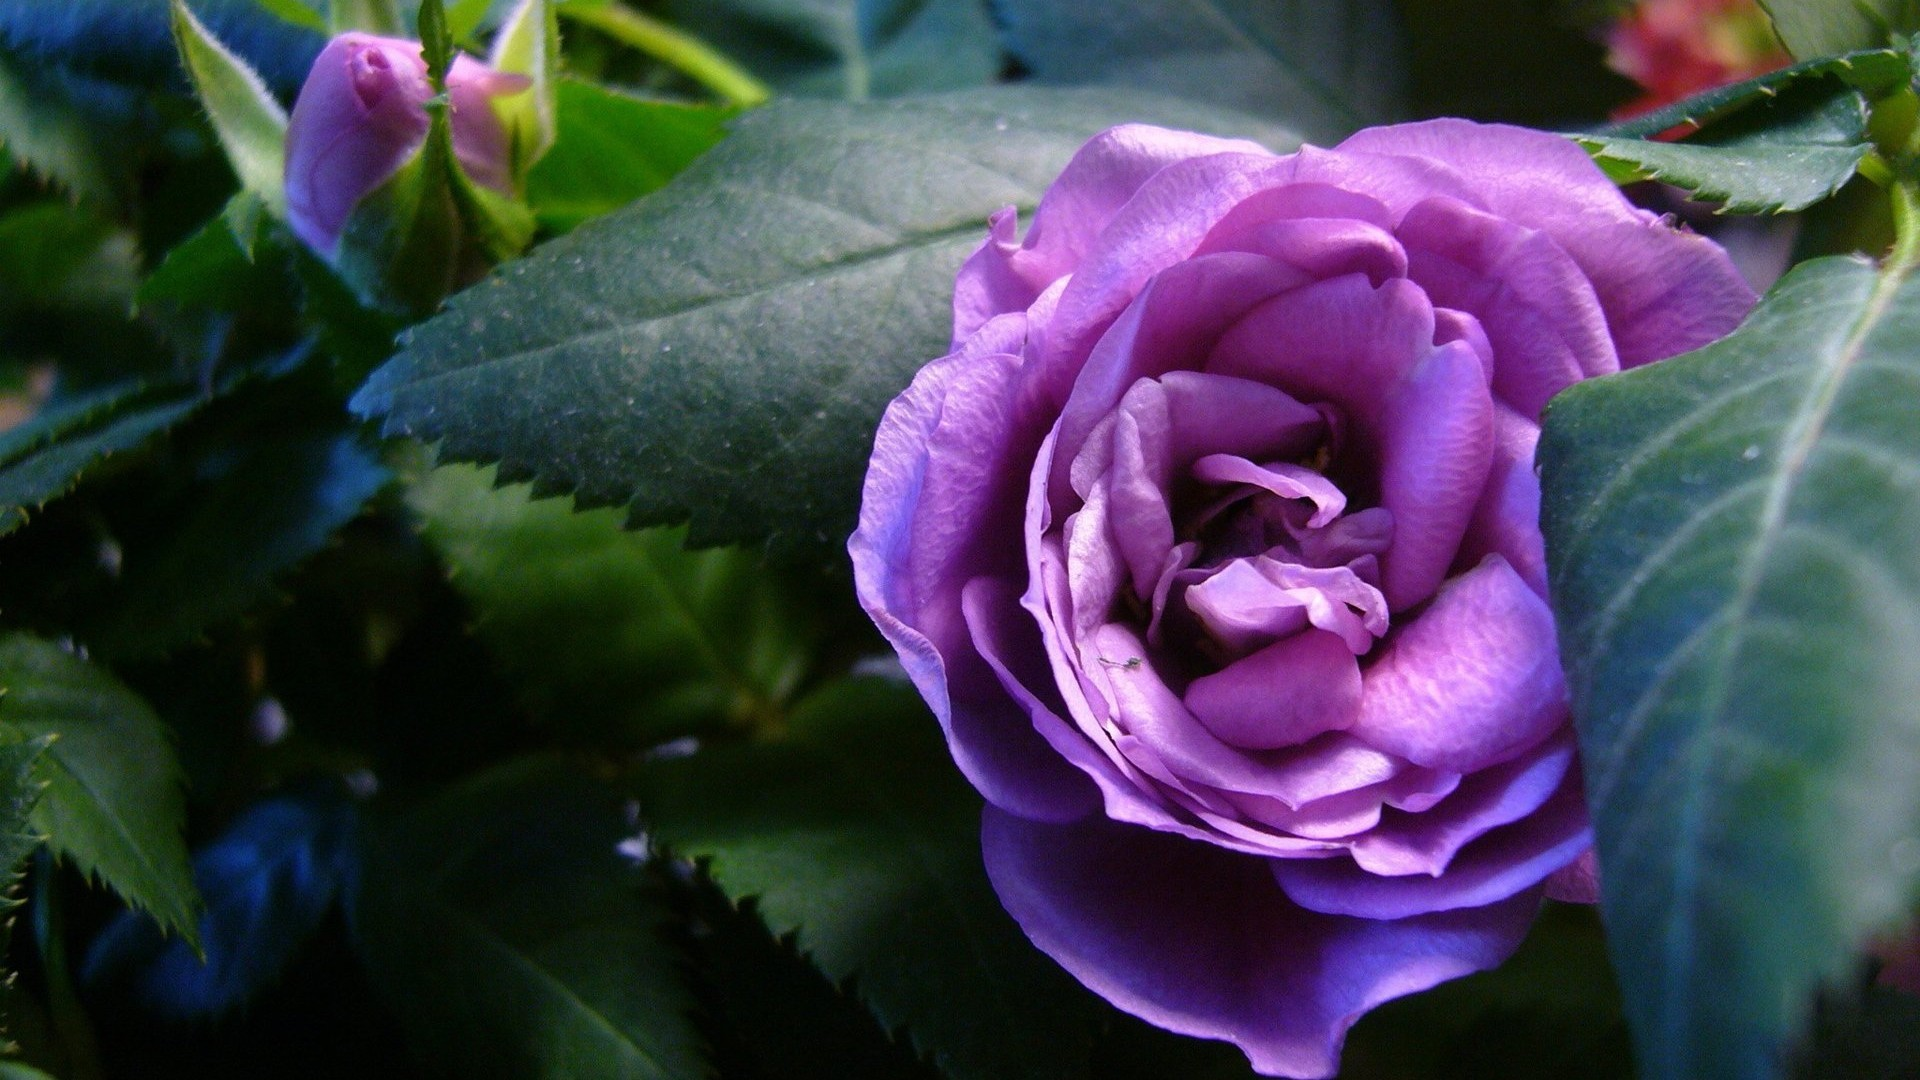 Res: 1920x1080, beautiful purple roses wallpapers Beautiful purple roses in the garden  wallpapers and images - wallpapers,